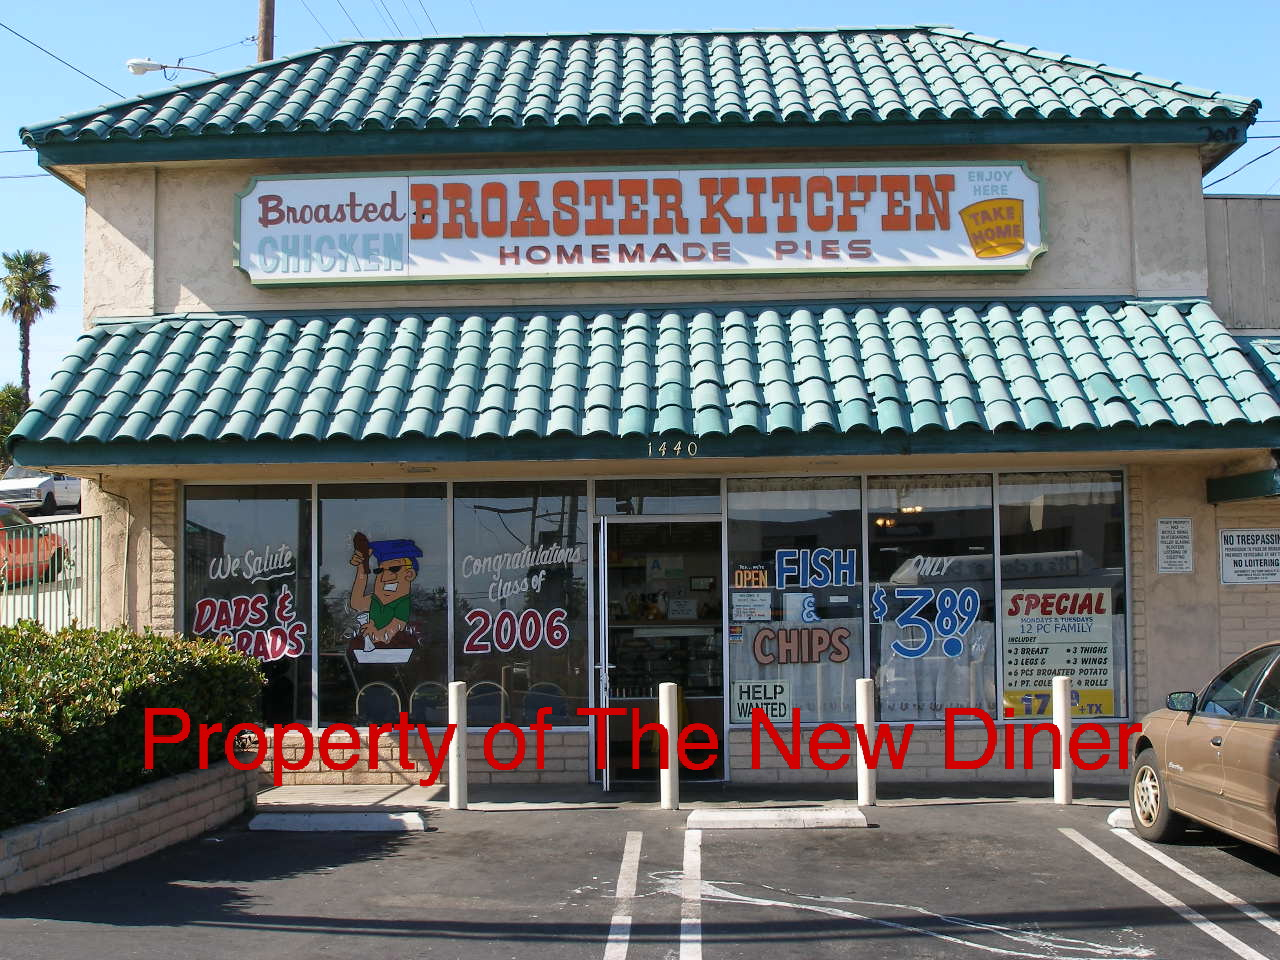 The New Diner: Broaster Kitchen-Updated Review